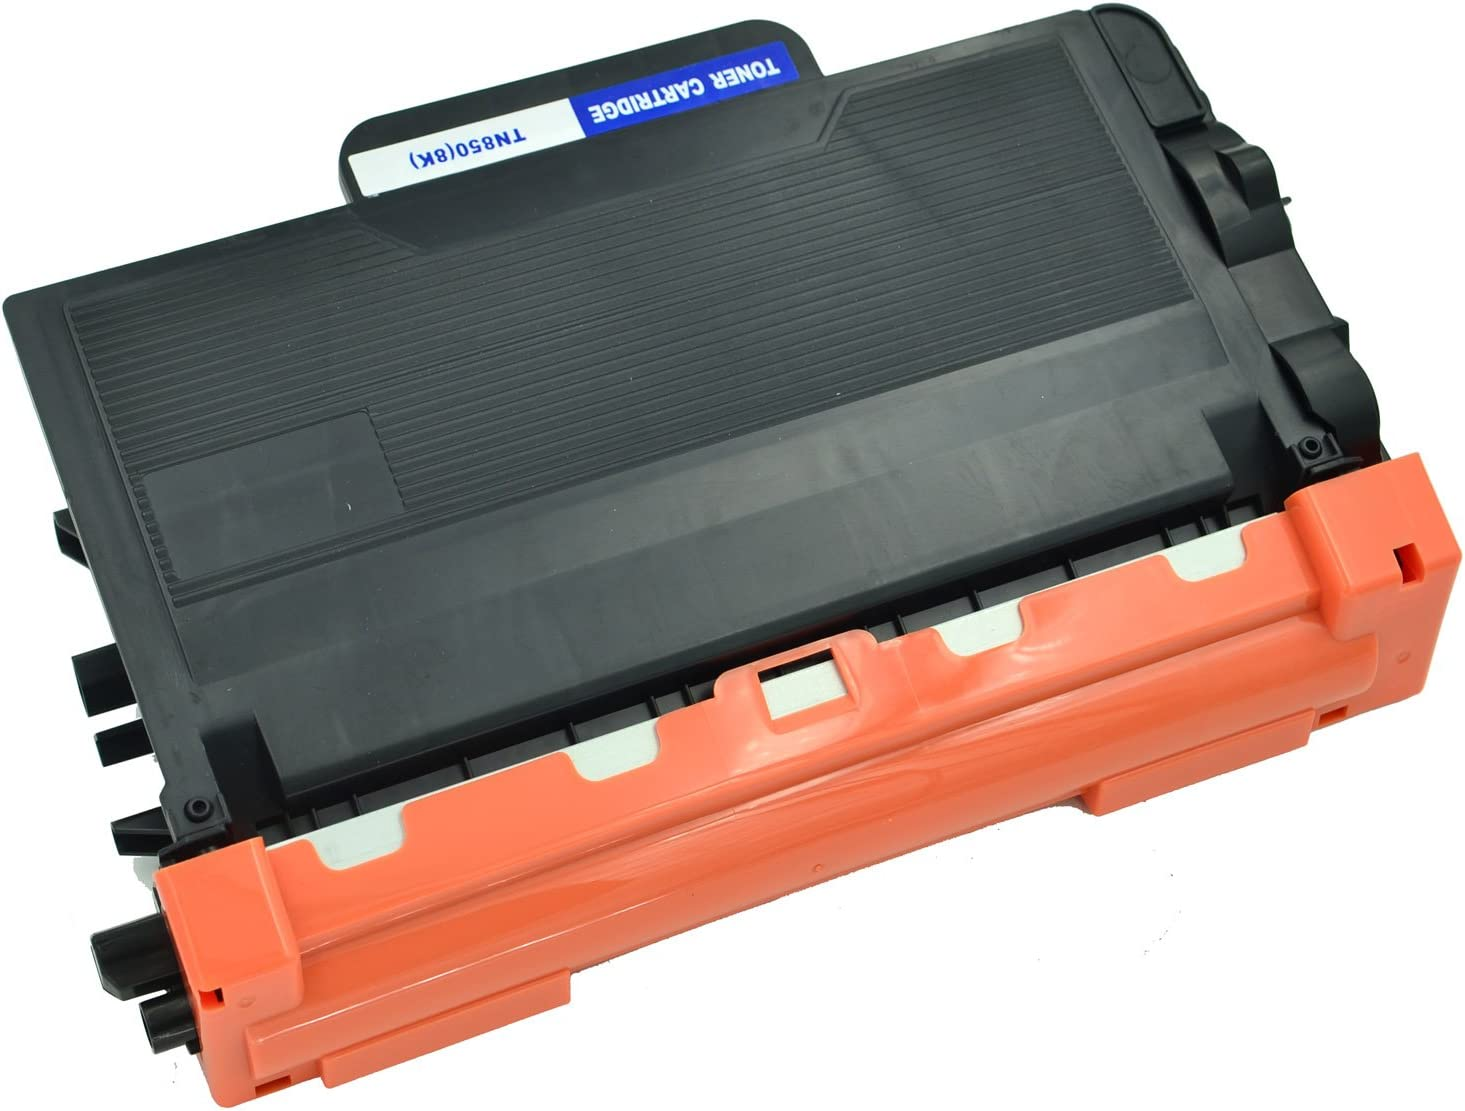 2 Toner, 1 Drum GREENCYCLE 3 Pack TN850 Toner /& DR820 Drum Unit Set Compatible for Brother DCP-L5500DN L5600DN L5650DN HL-L6200DW L6200DWT L5200DWT L5200DW L5100DN L5000D MFC-L5850DW L5900DW Printer